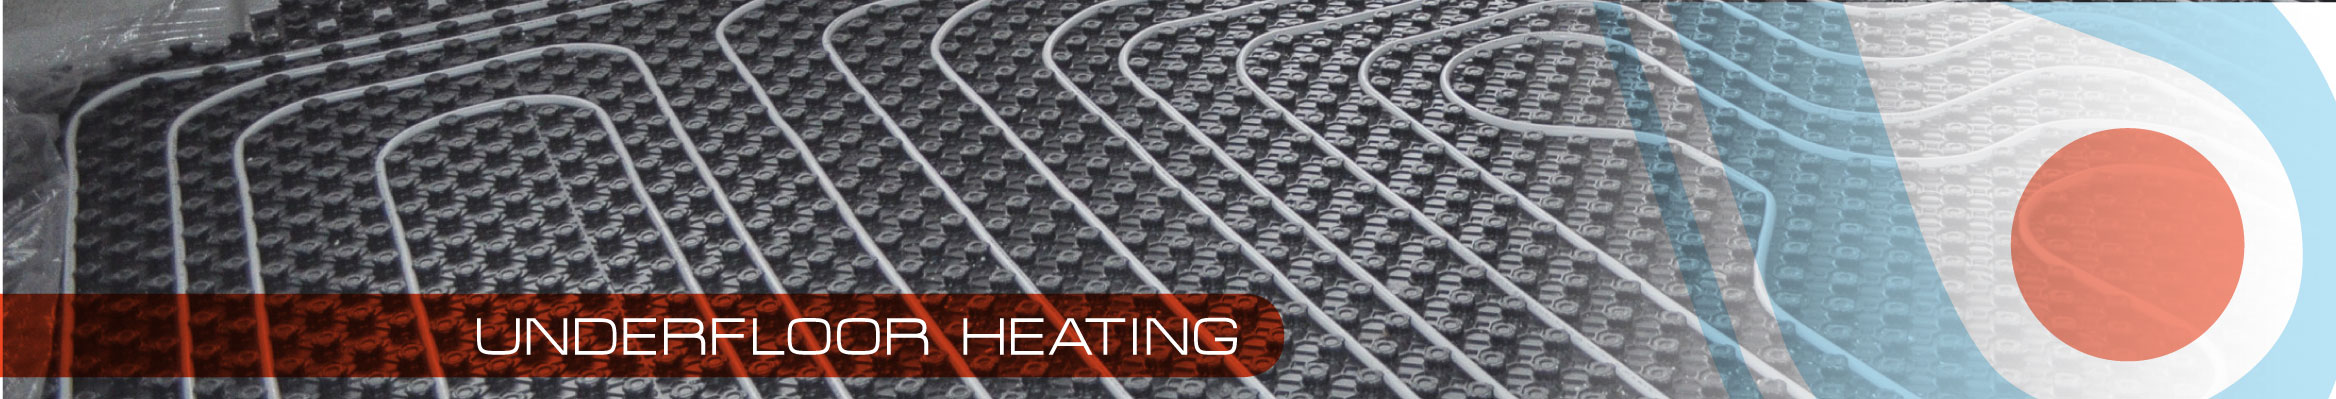 Underfloor Heating Caversham